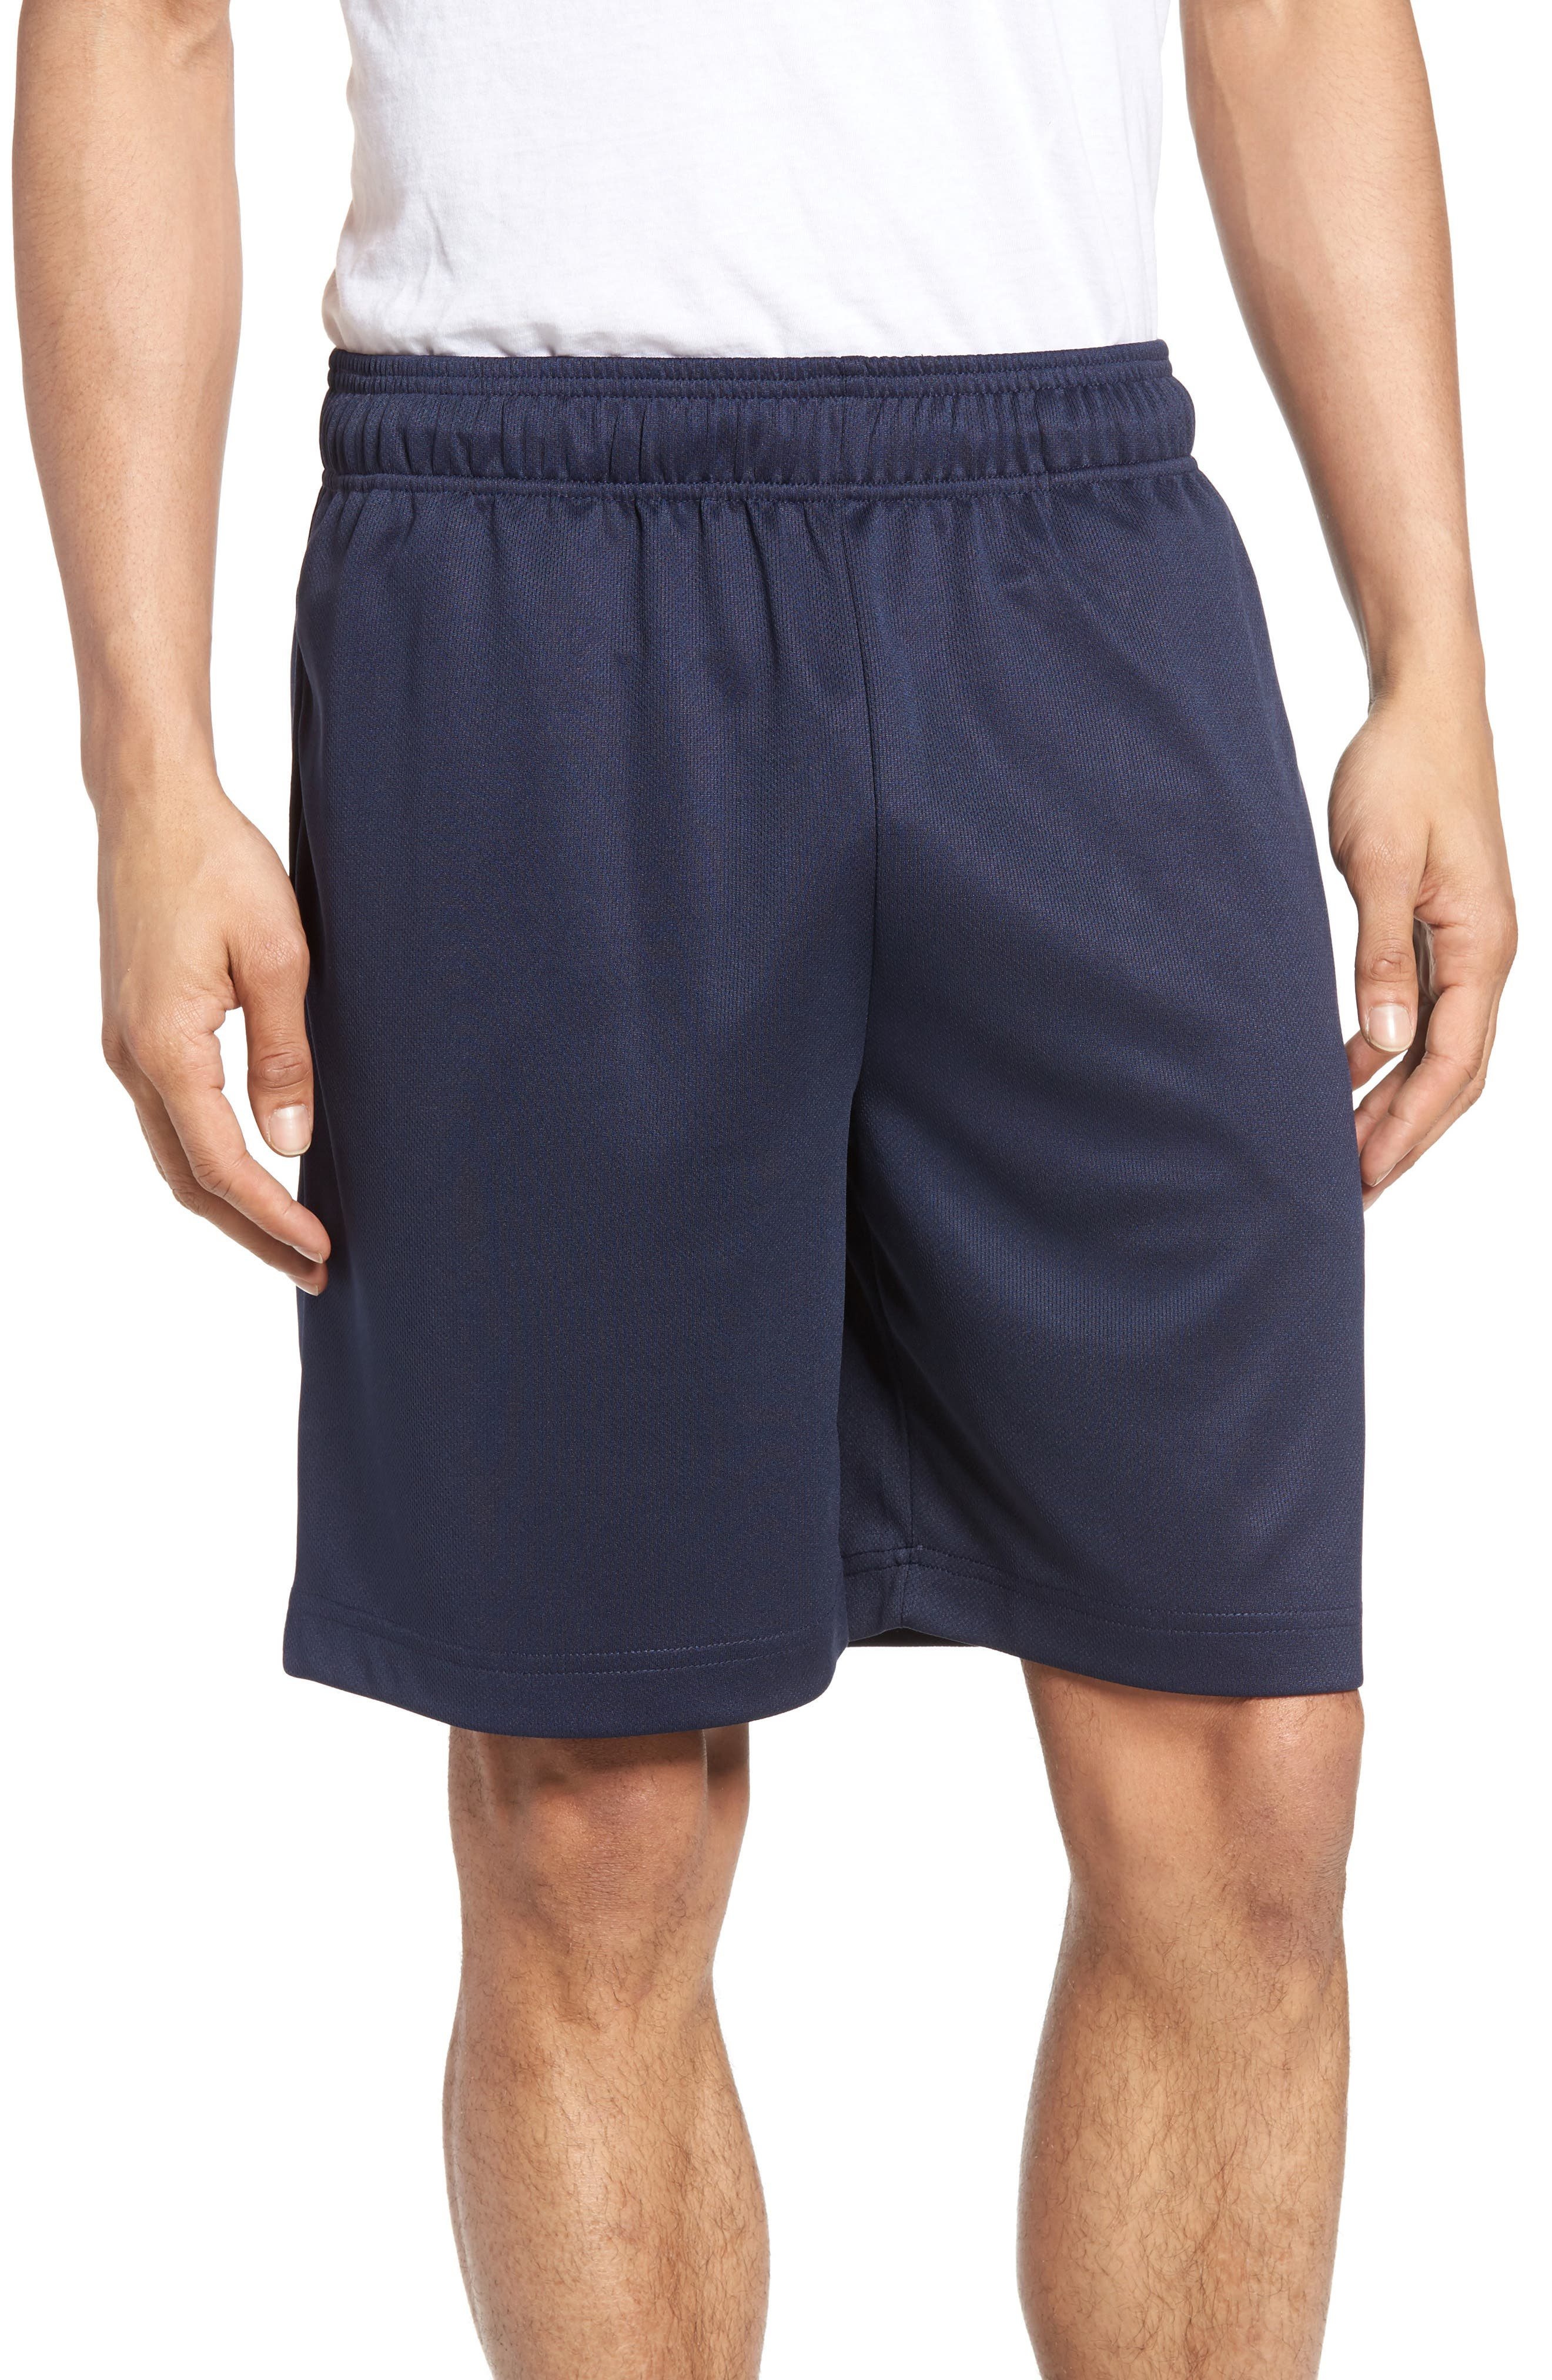 Work Out Lounge Shorts,                         Main,                         color, Navy